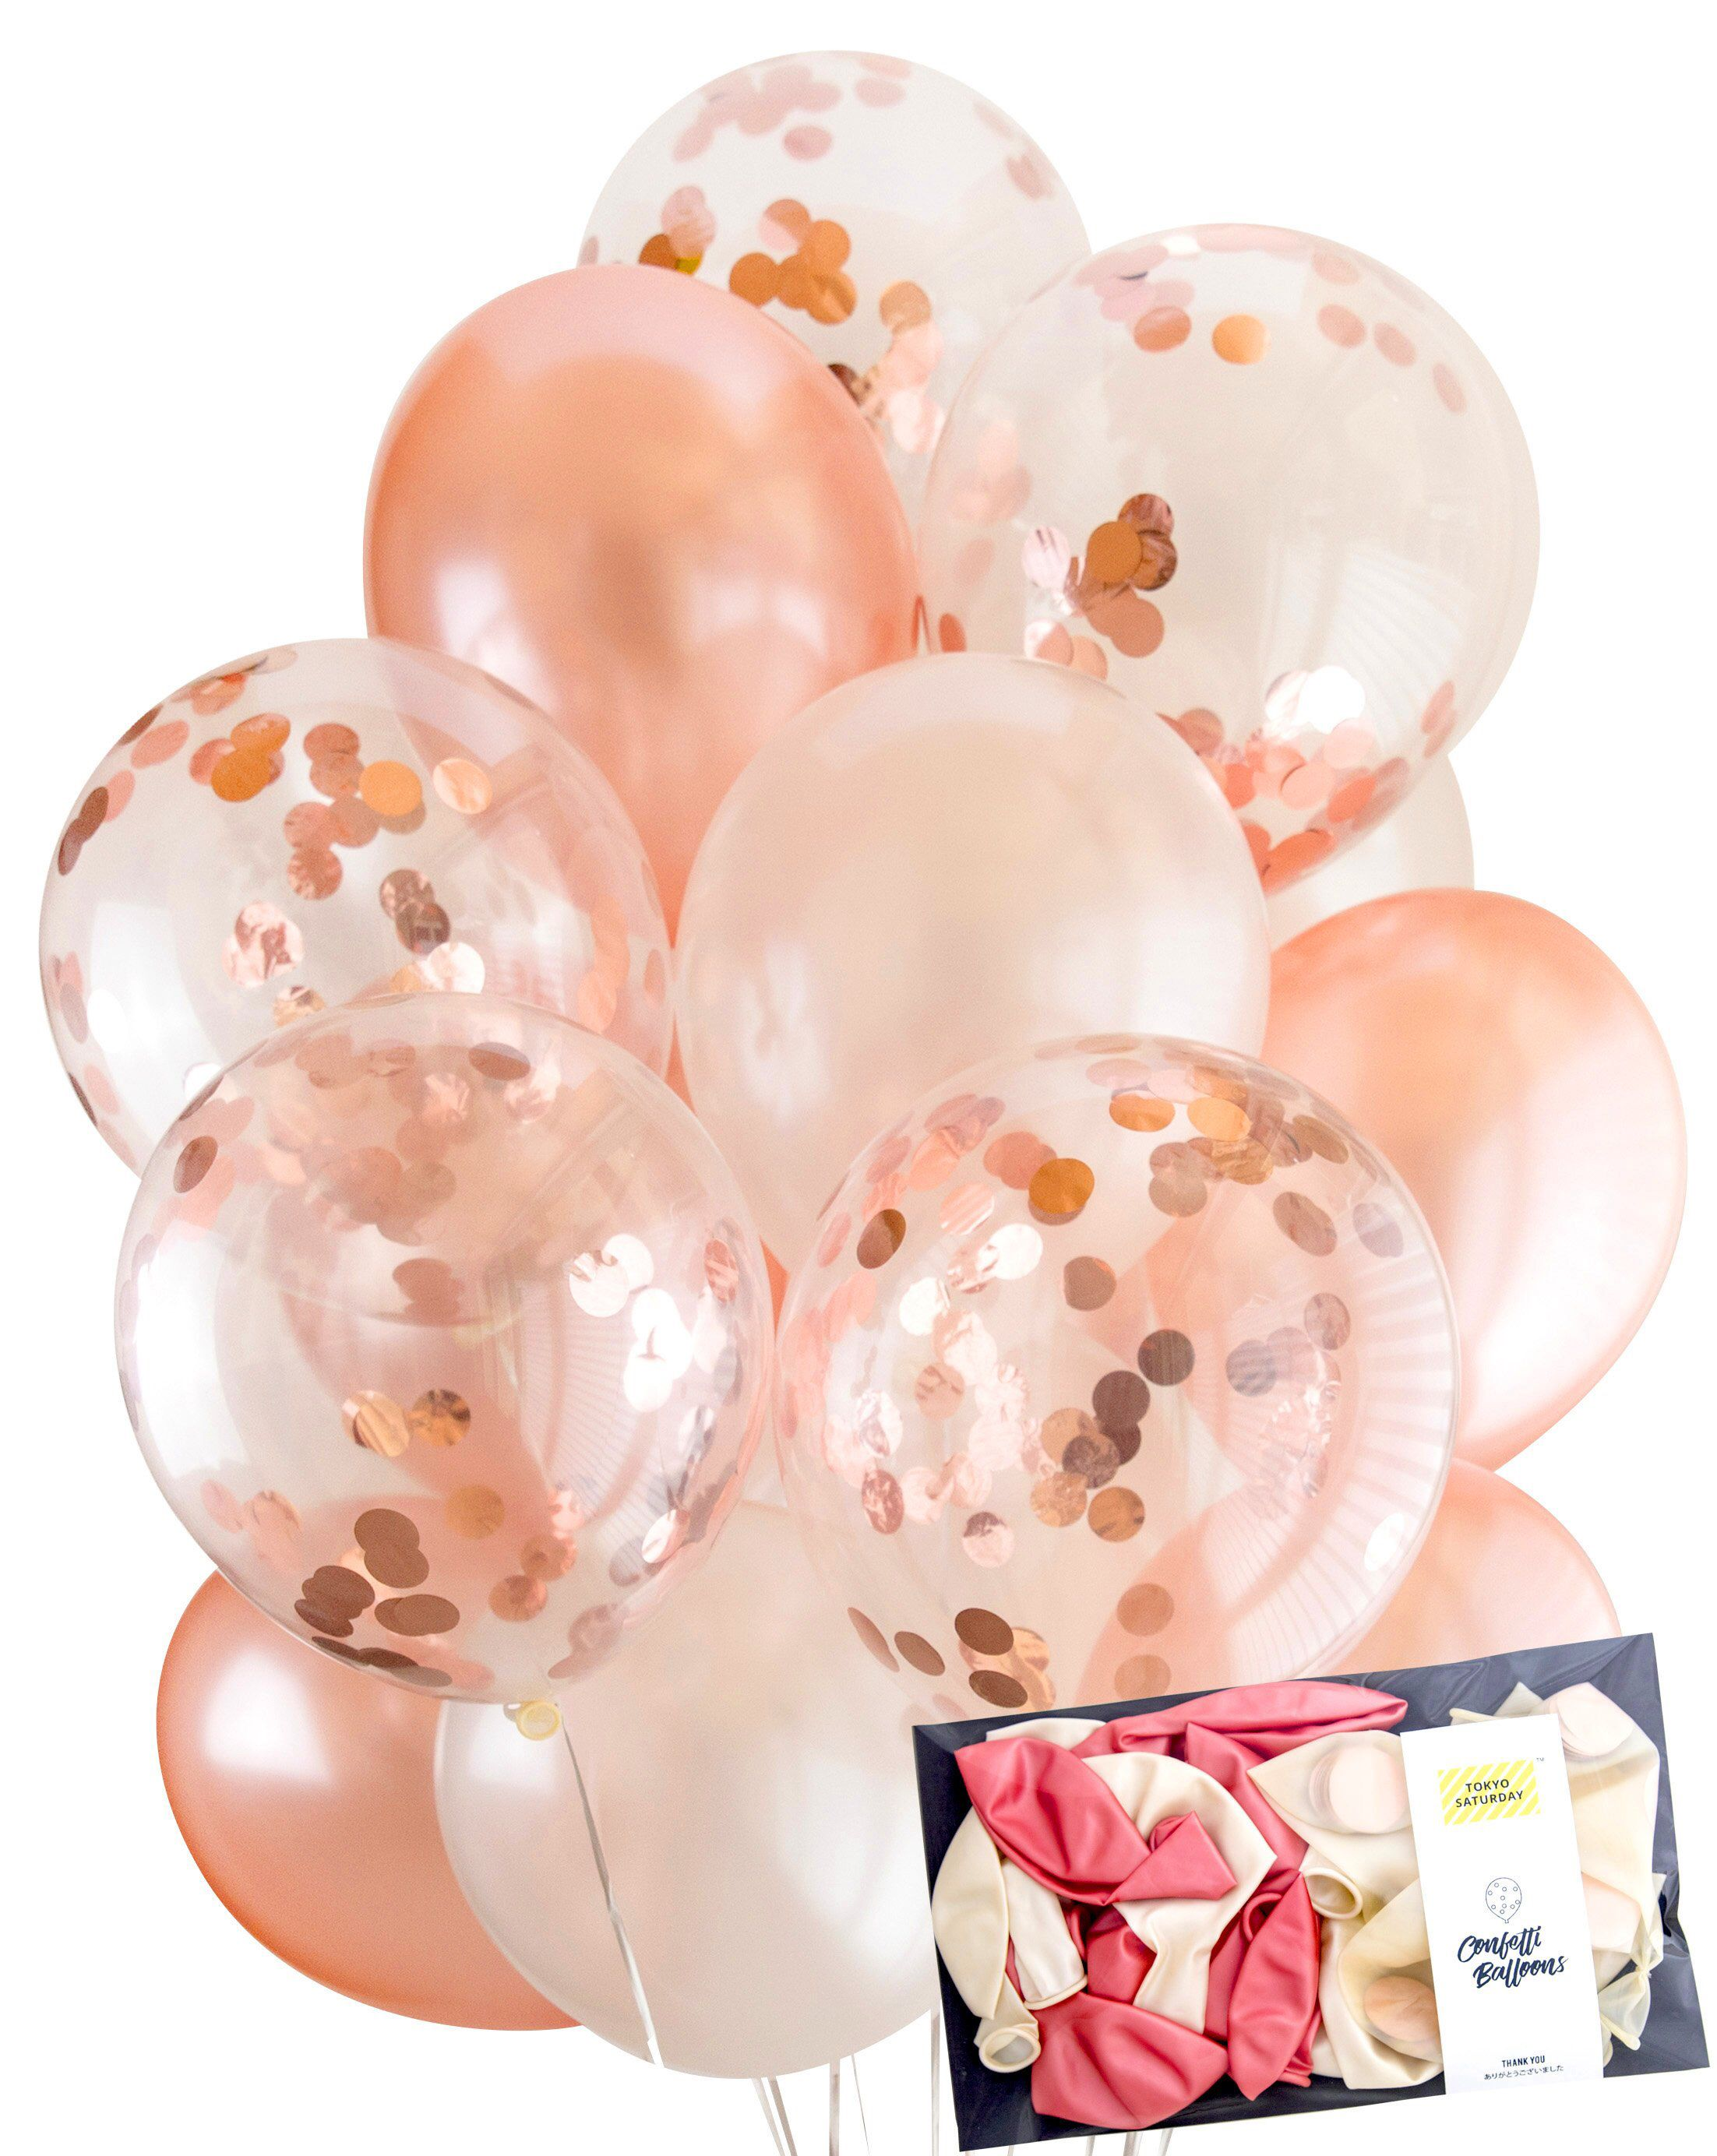 Pin by TOKYO SATURDAY on Ballooning | Rose gold balloons, Gold